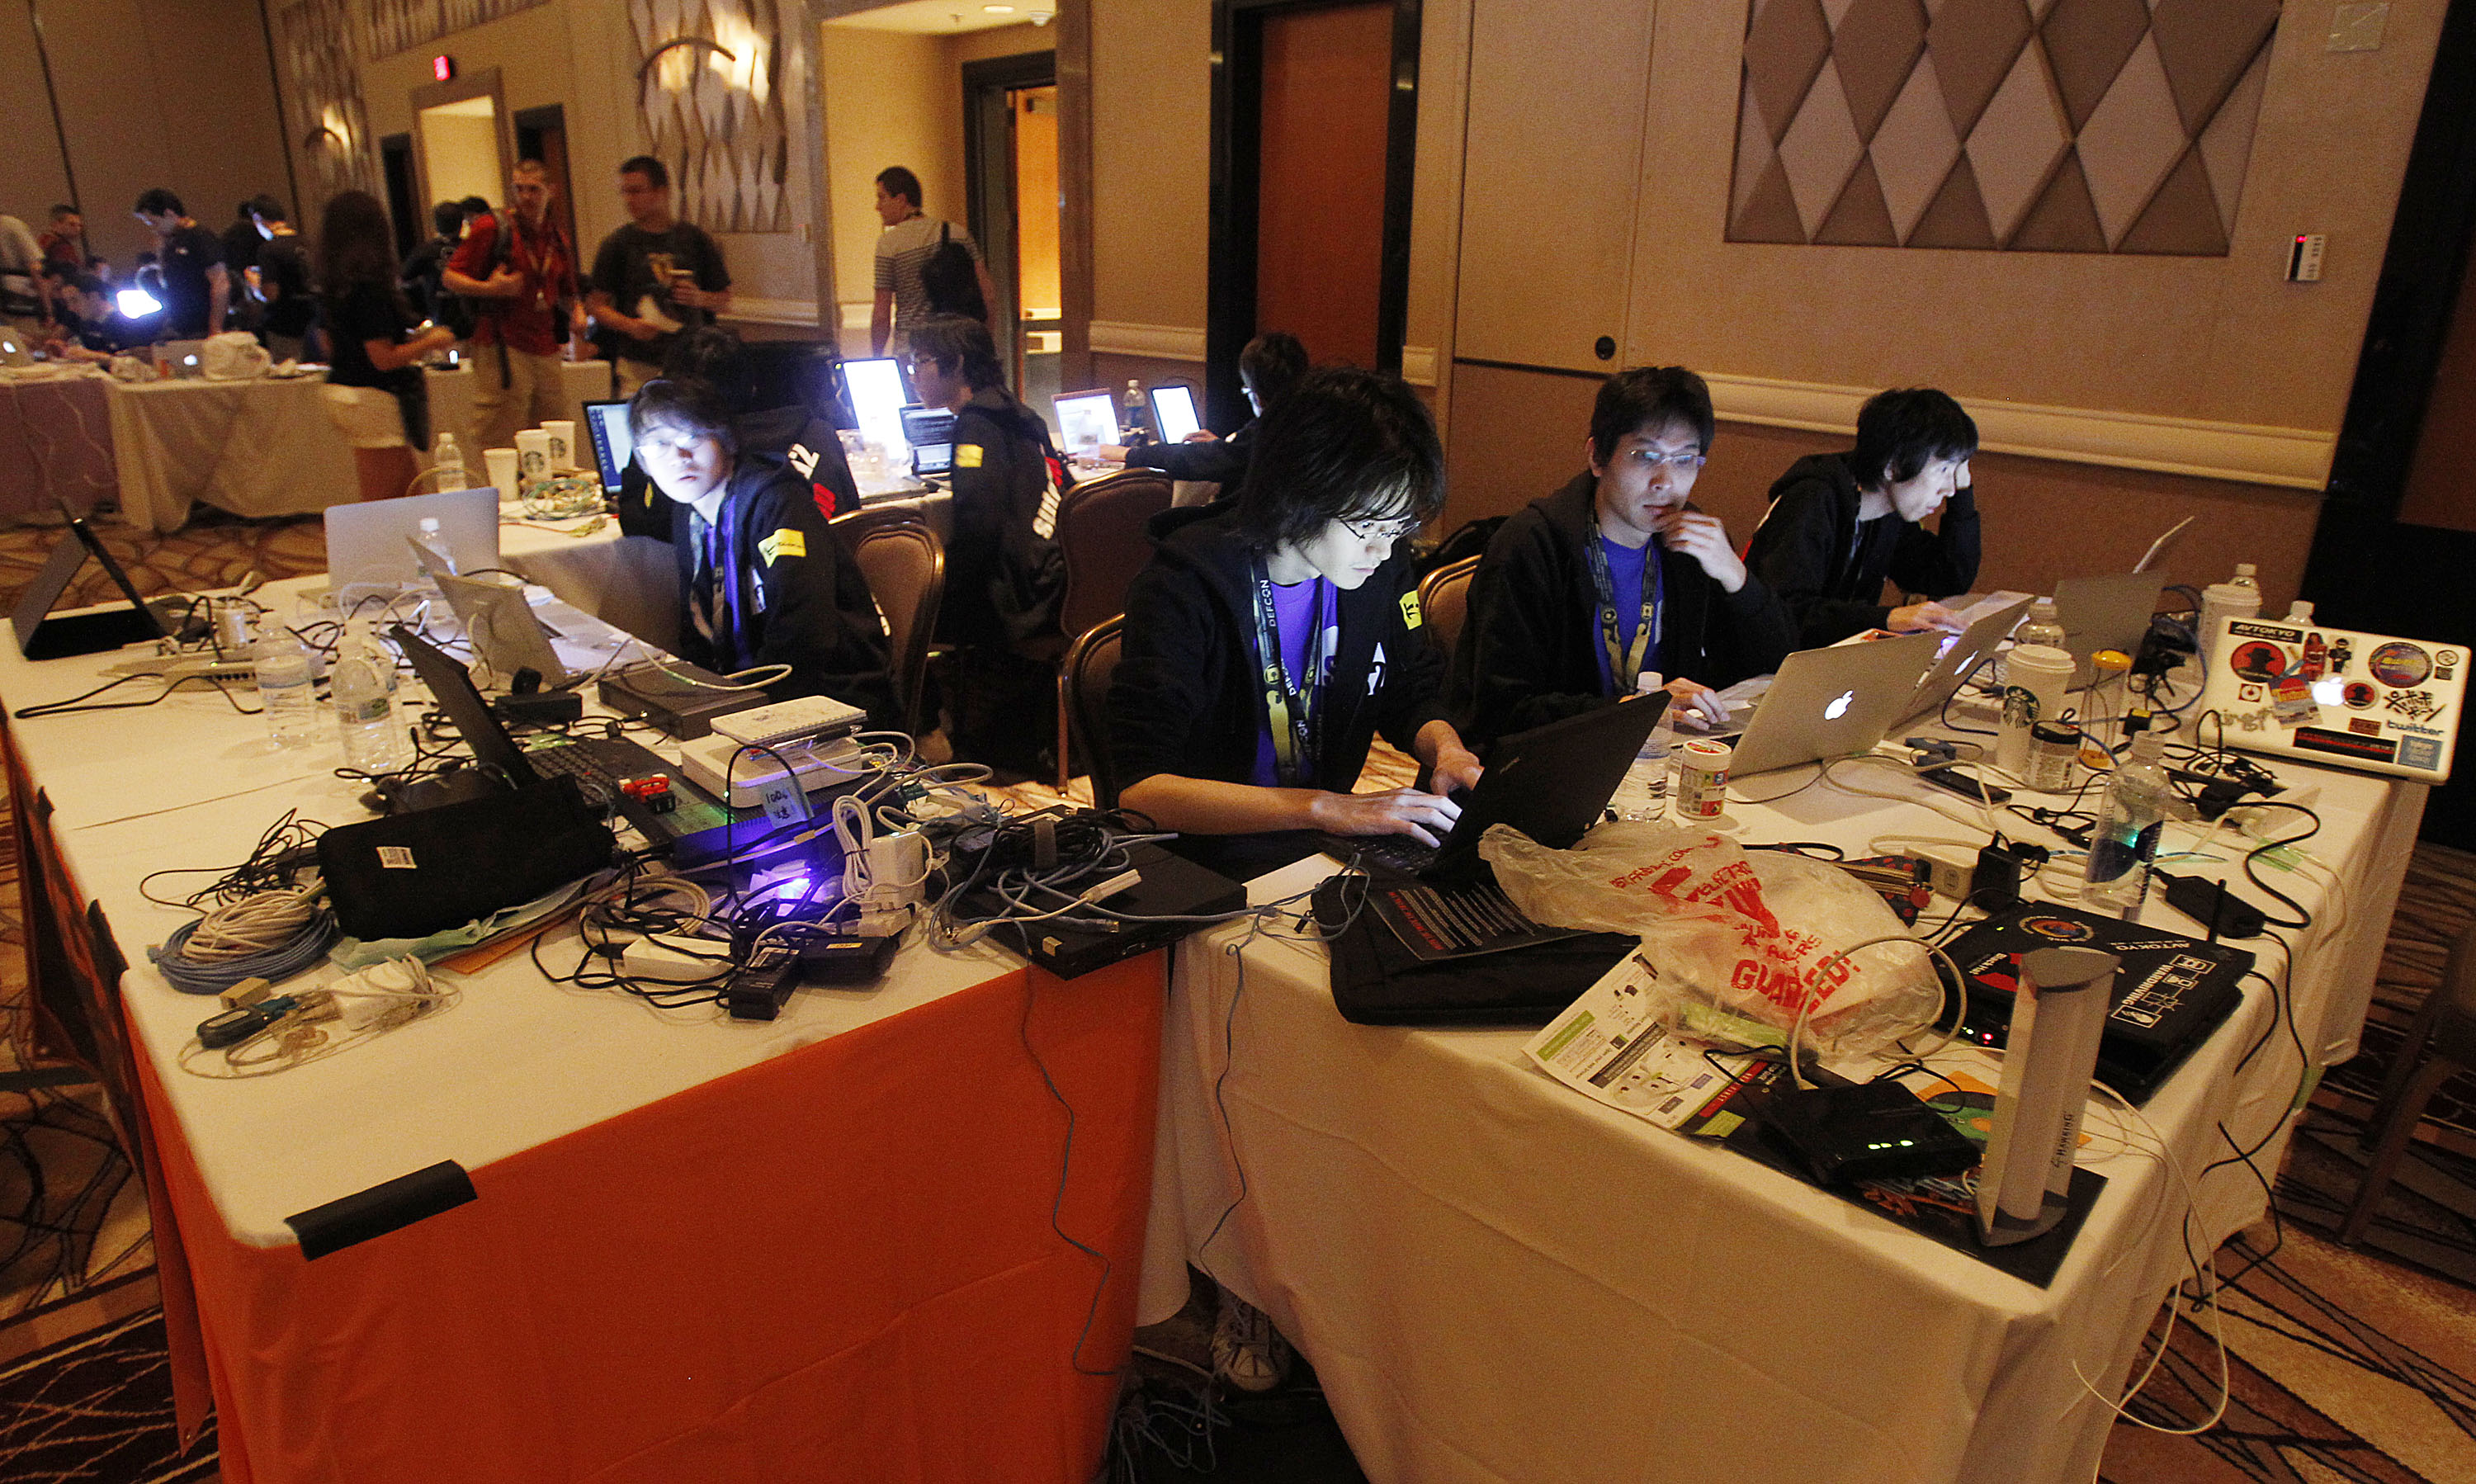 Hackers compete in a digital capture the flag game at the DefCon conference Friday, Aug. 5, 2011, in Las Vegas.